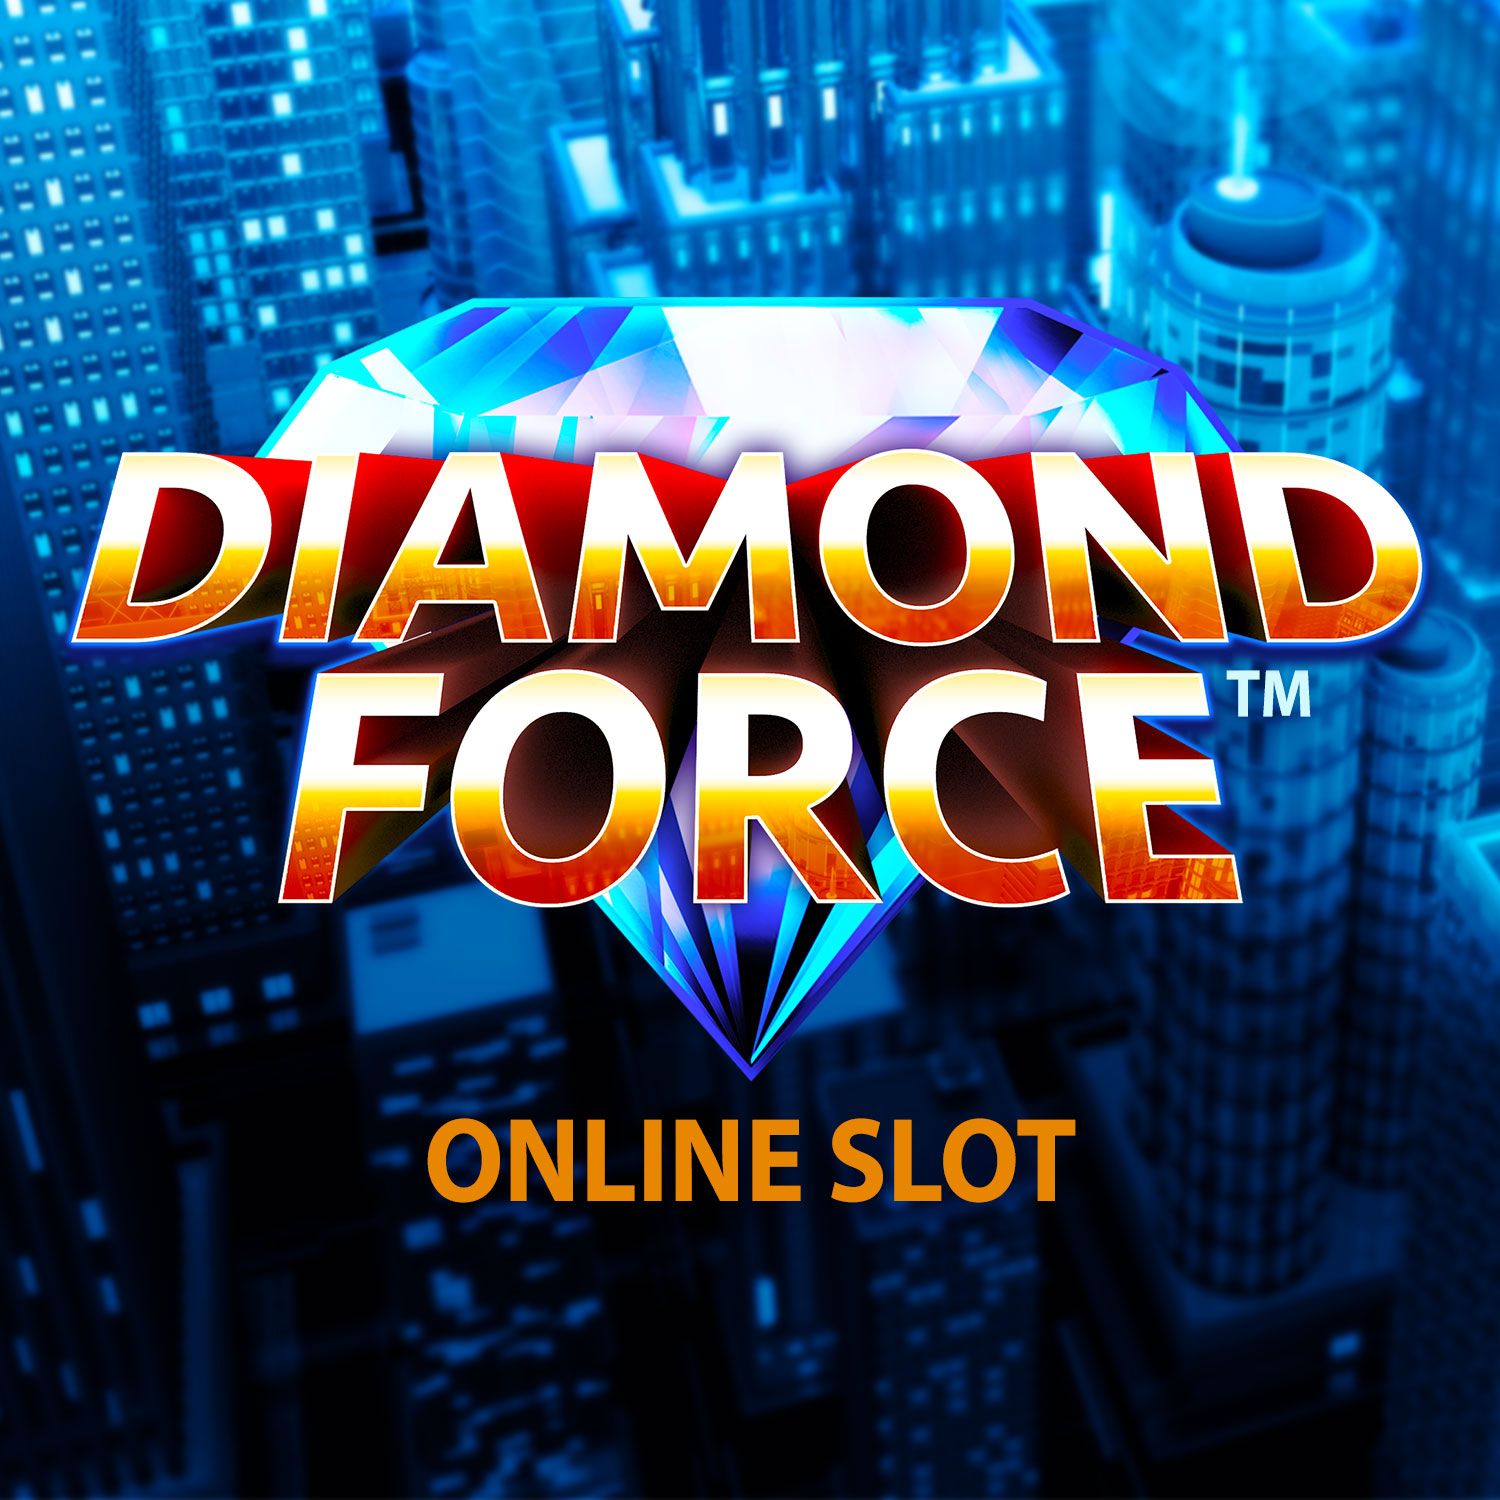 Diamond Force™ To The Rescue